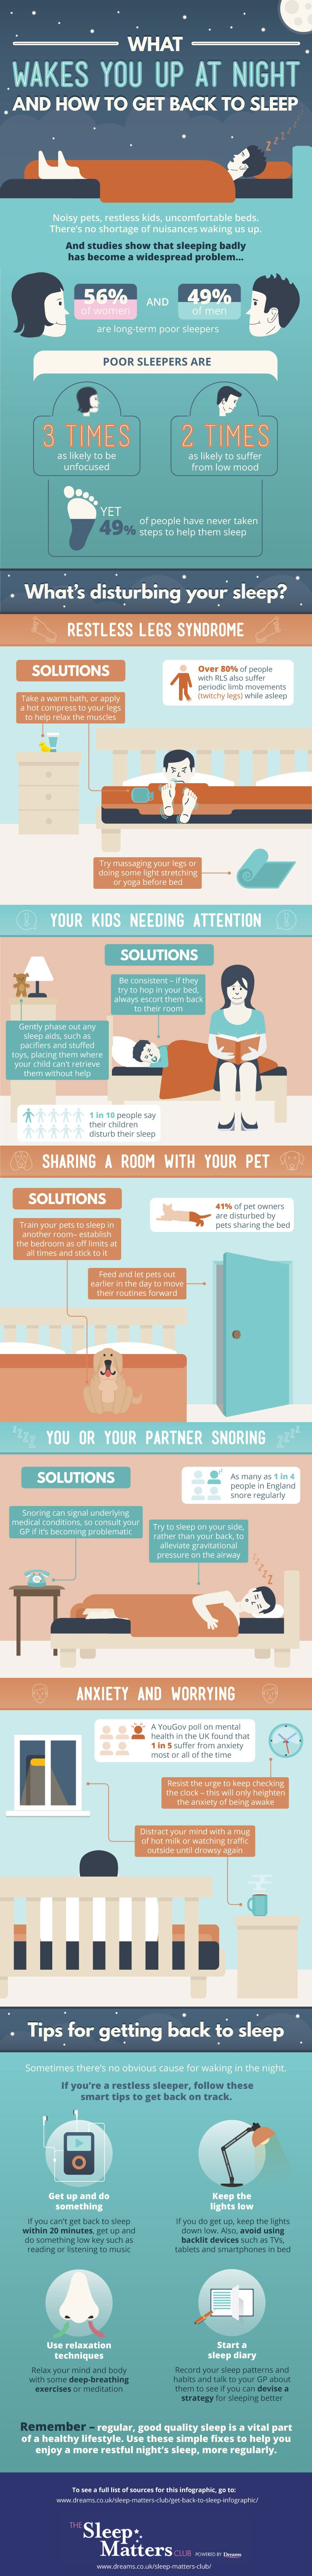 How to Get Back To Sleep - An Infographic from The Sleep Matters Club